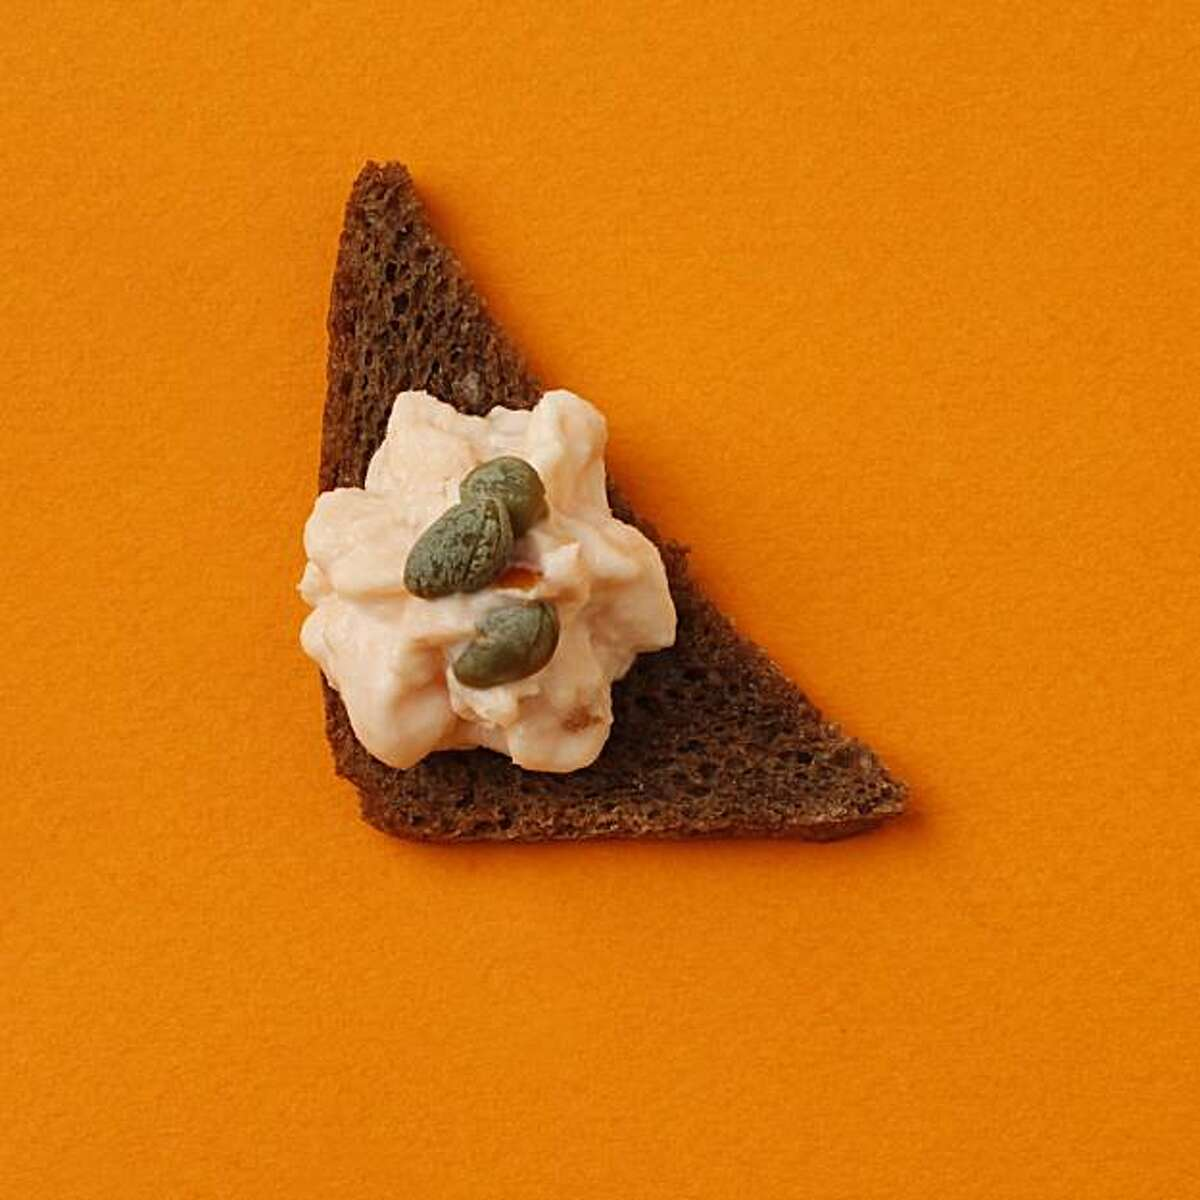 Smoked Salmon and Caper Spread on Pimpernickel in San Francisco, Calif., on December 3, 2009. Food styled by Kalena Ross and Sarah Fritsche.